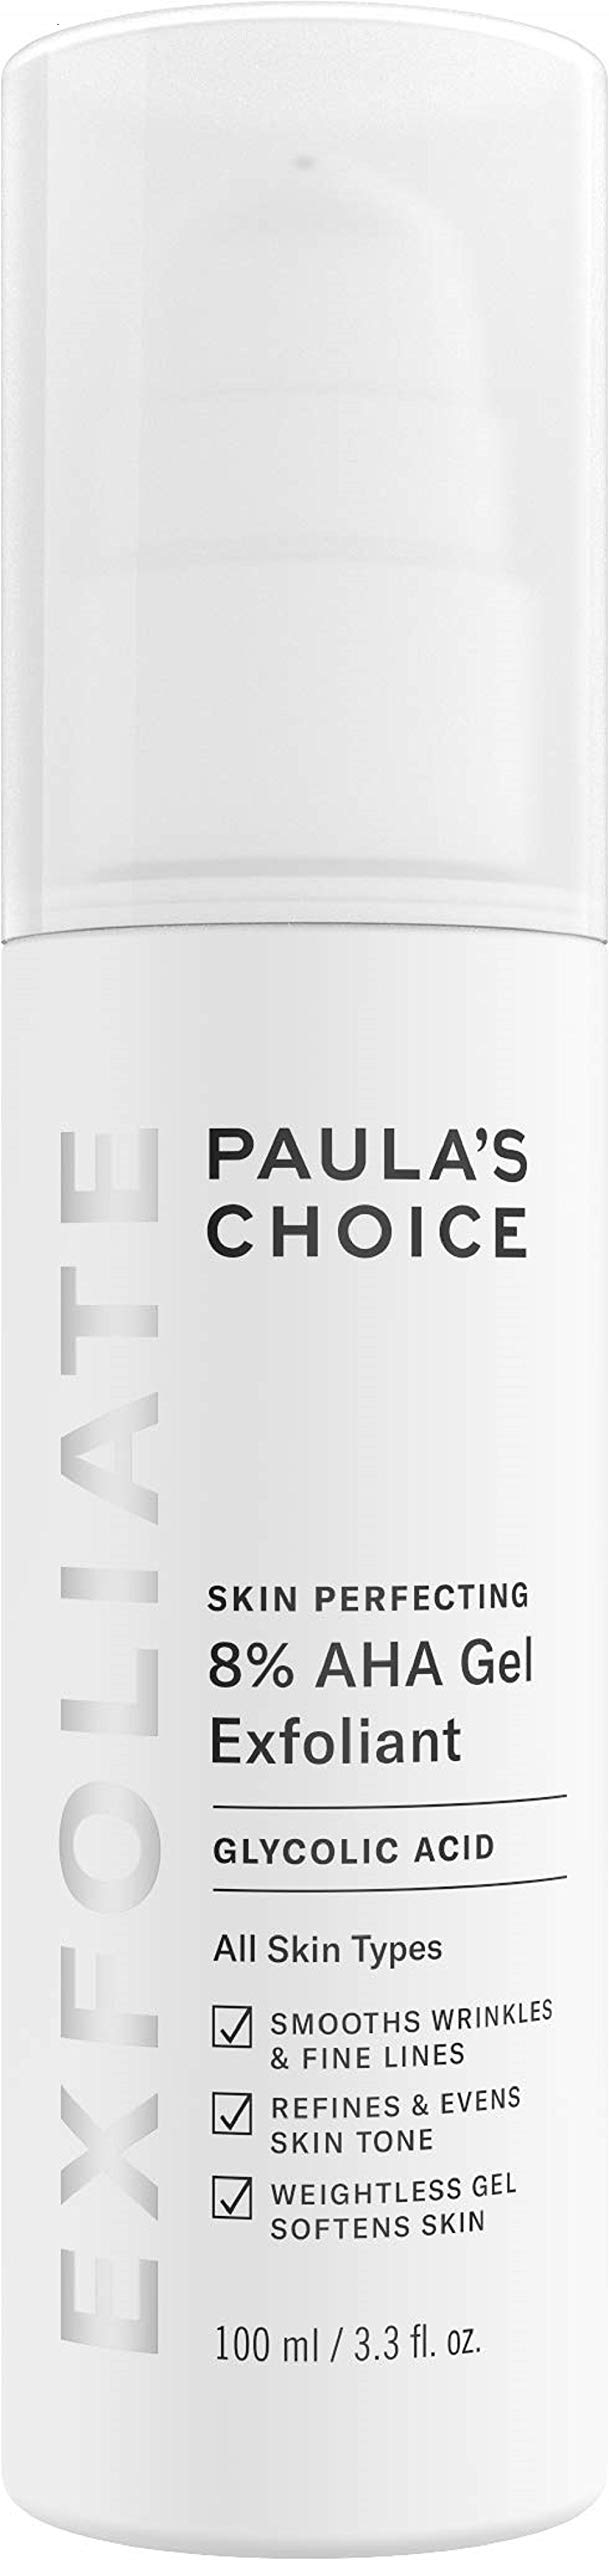 Paula's Choice SKIN PERFECTING 8% AHA Gel Exfoliant with Glycolic Acid Chamomile & Green Tea, 3.3 Ounce Pump Leave-On Gentle Exfoliator by PAULA'S CHOICE